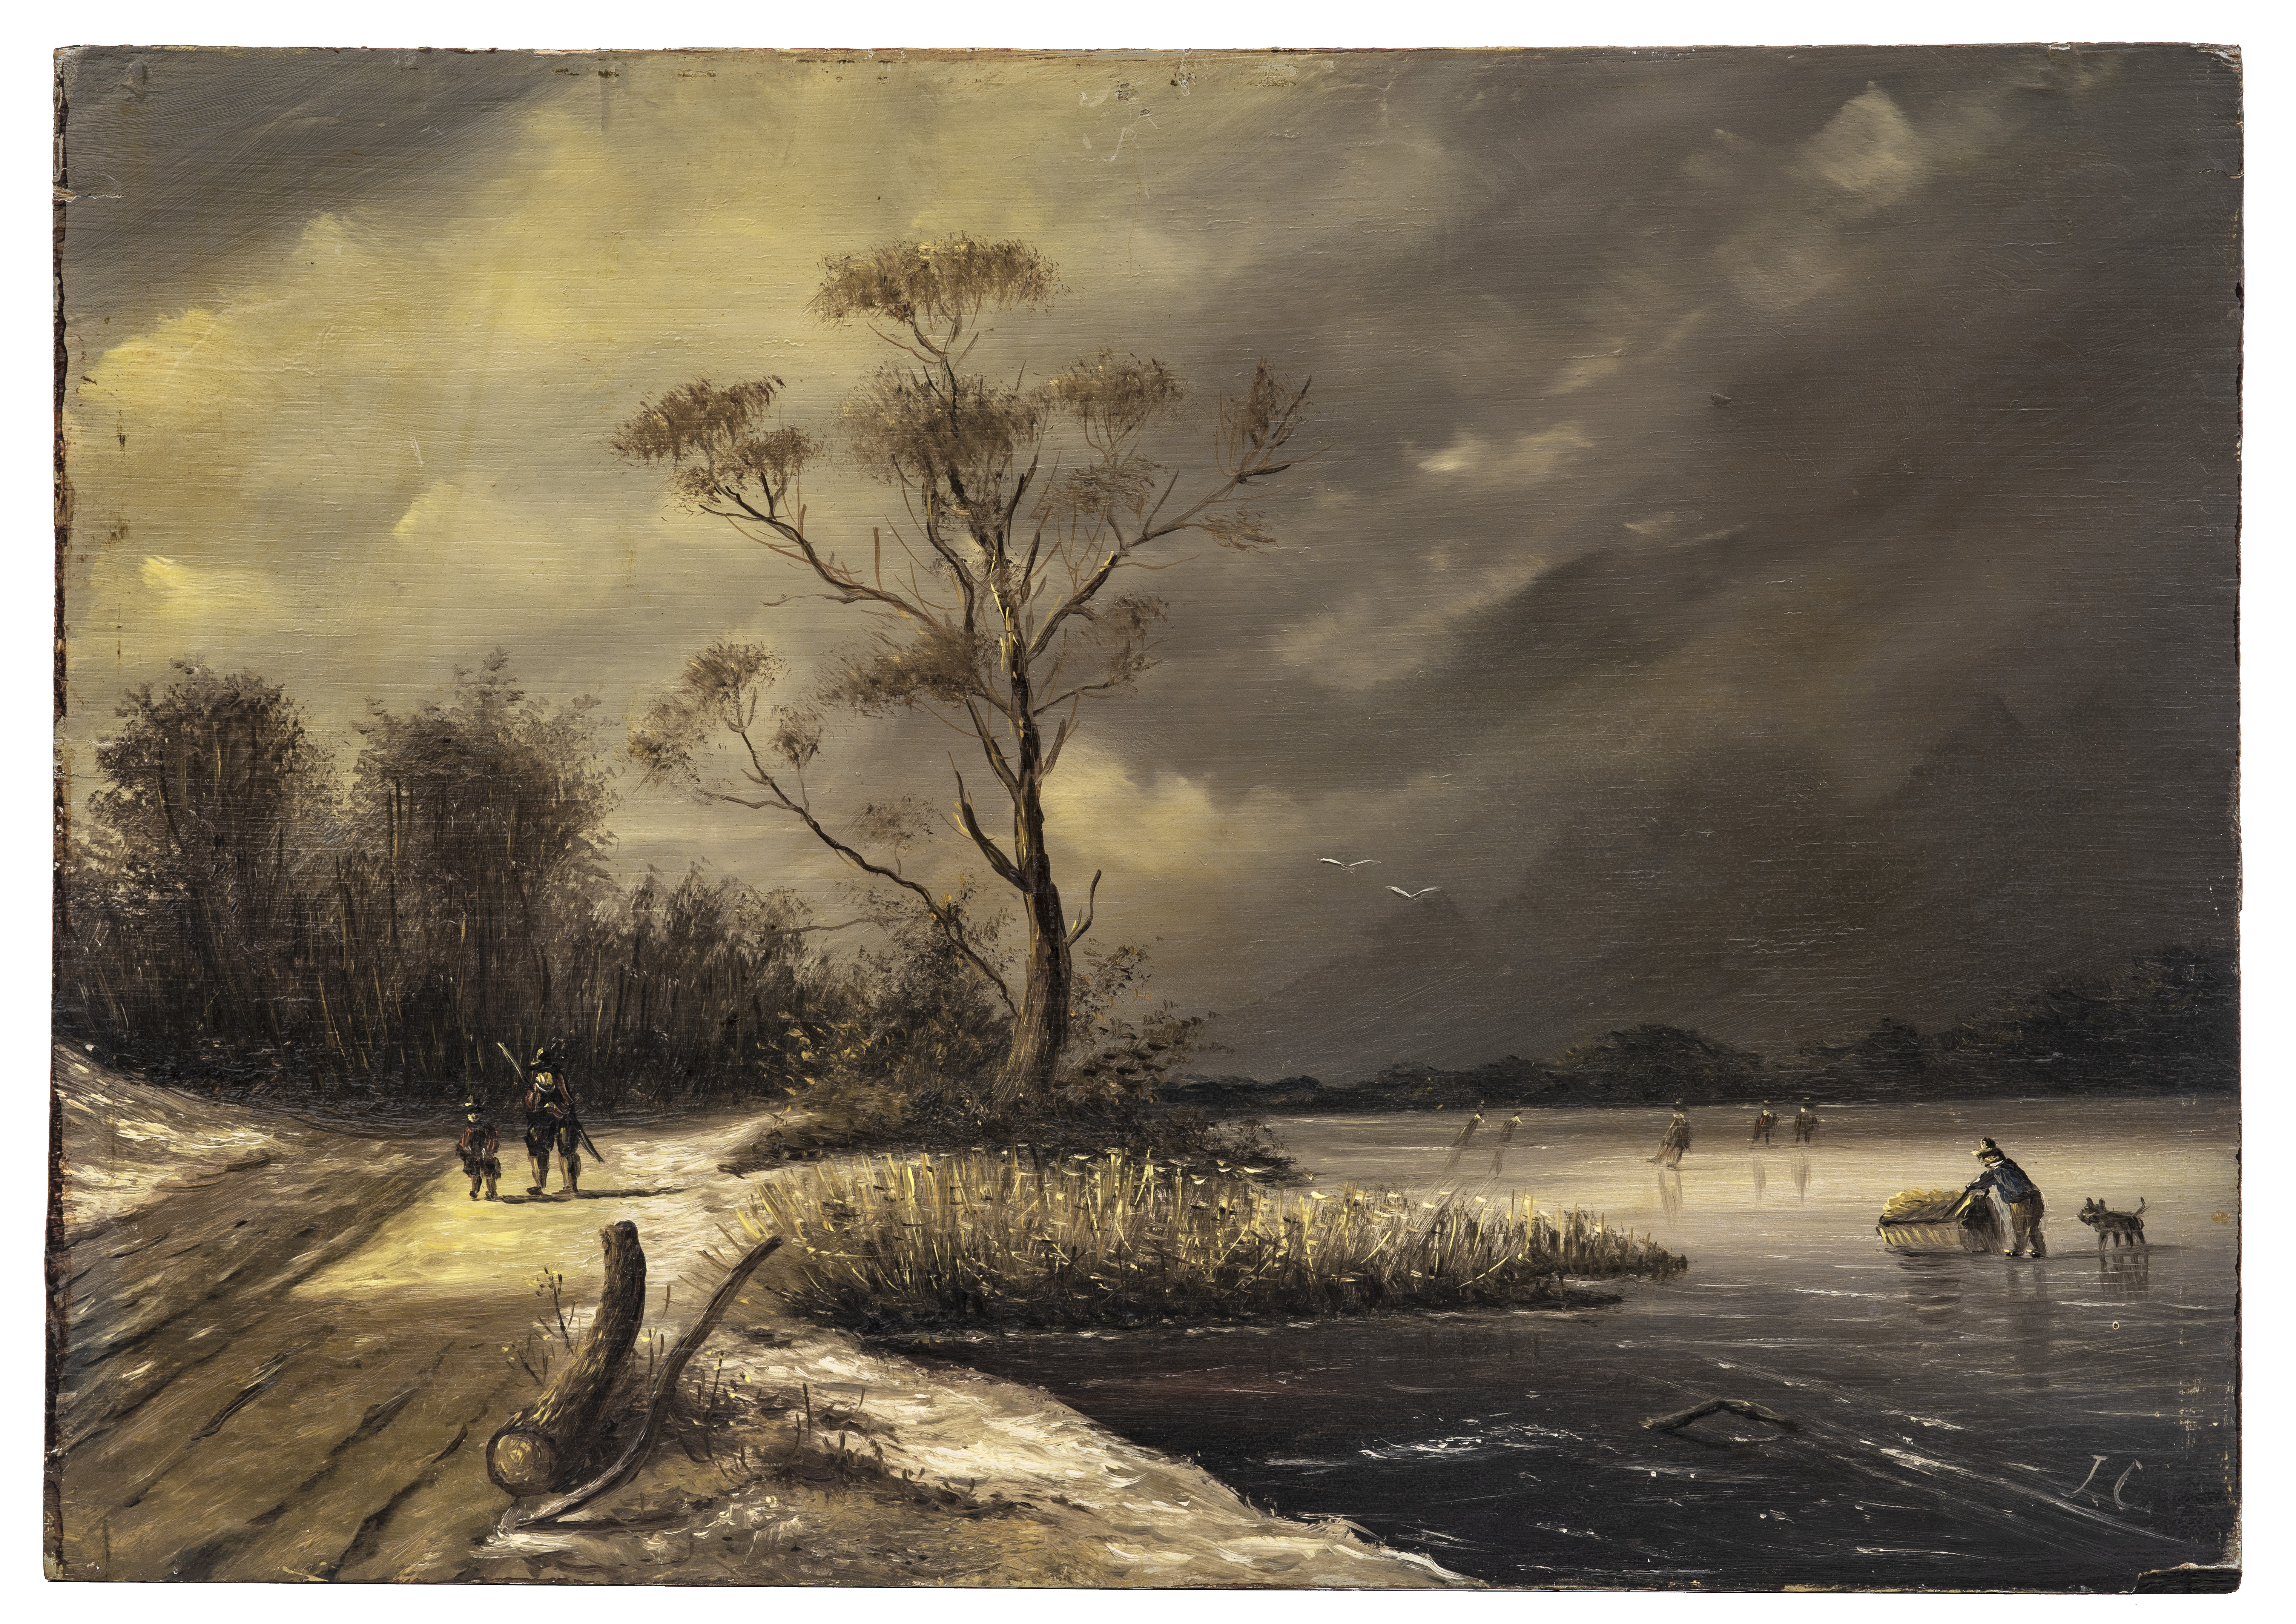 A Dutch Master Landscape Painting Attributed To Jan Jacob Coenraad Spohler 1837-1923 Winter Scene